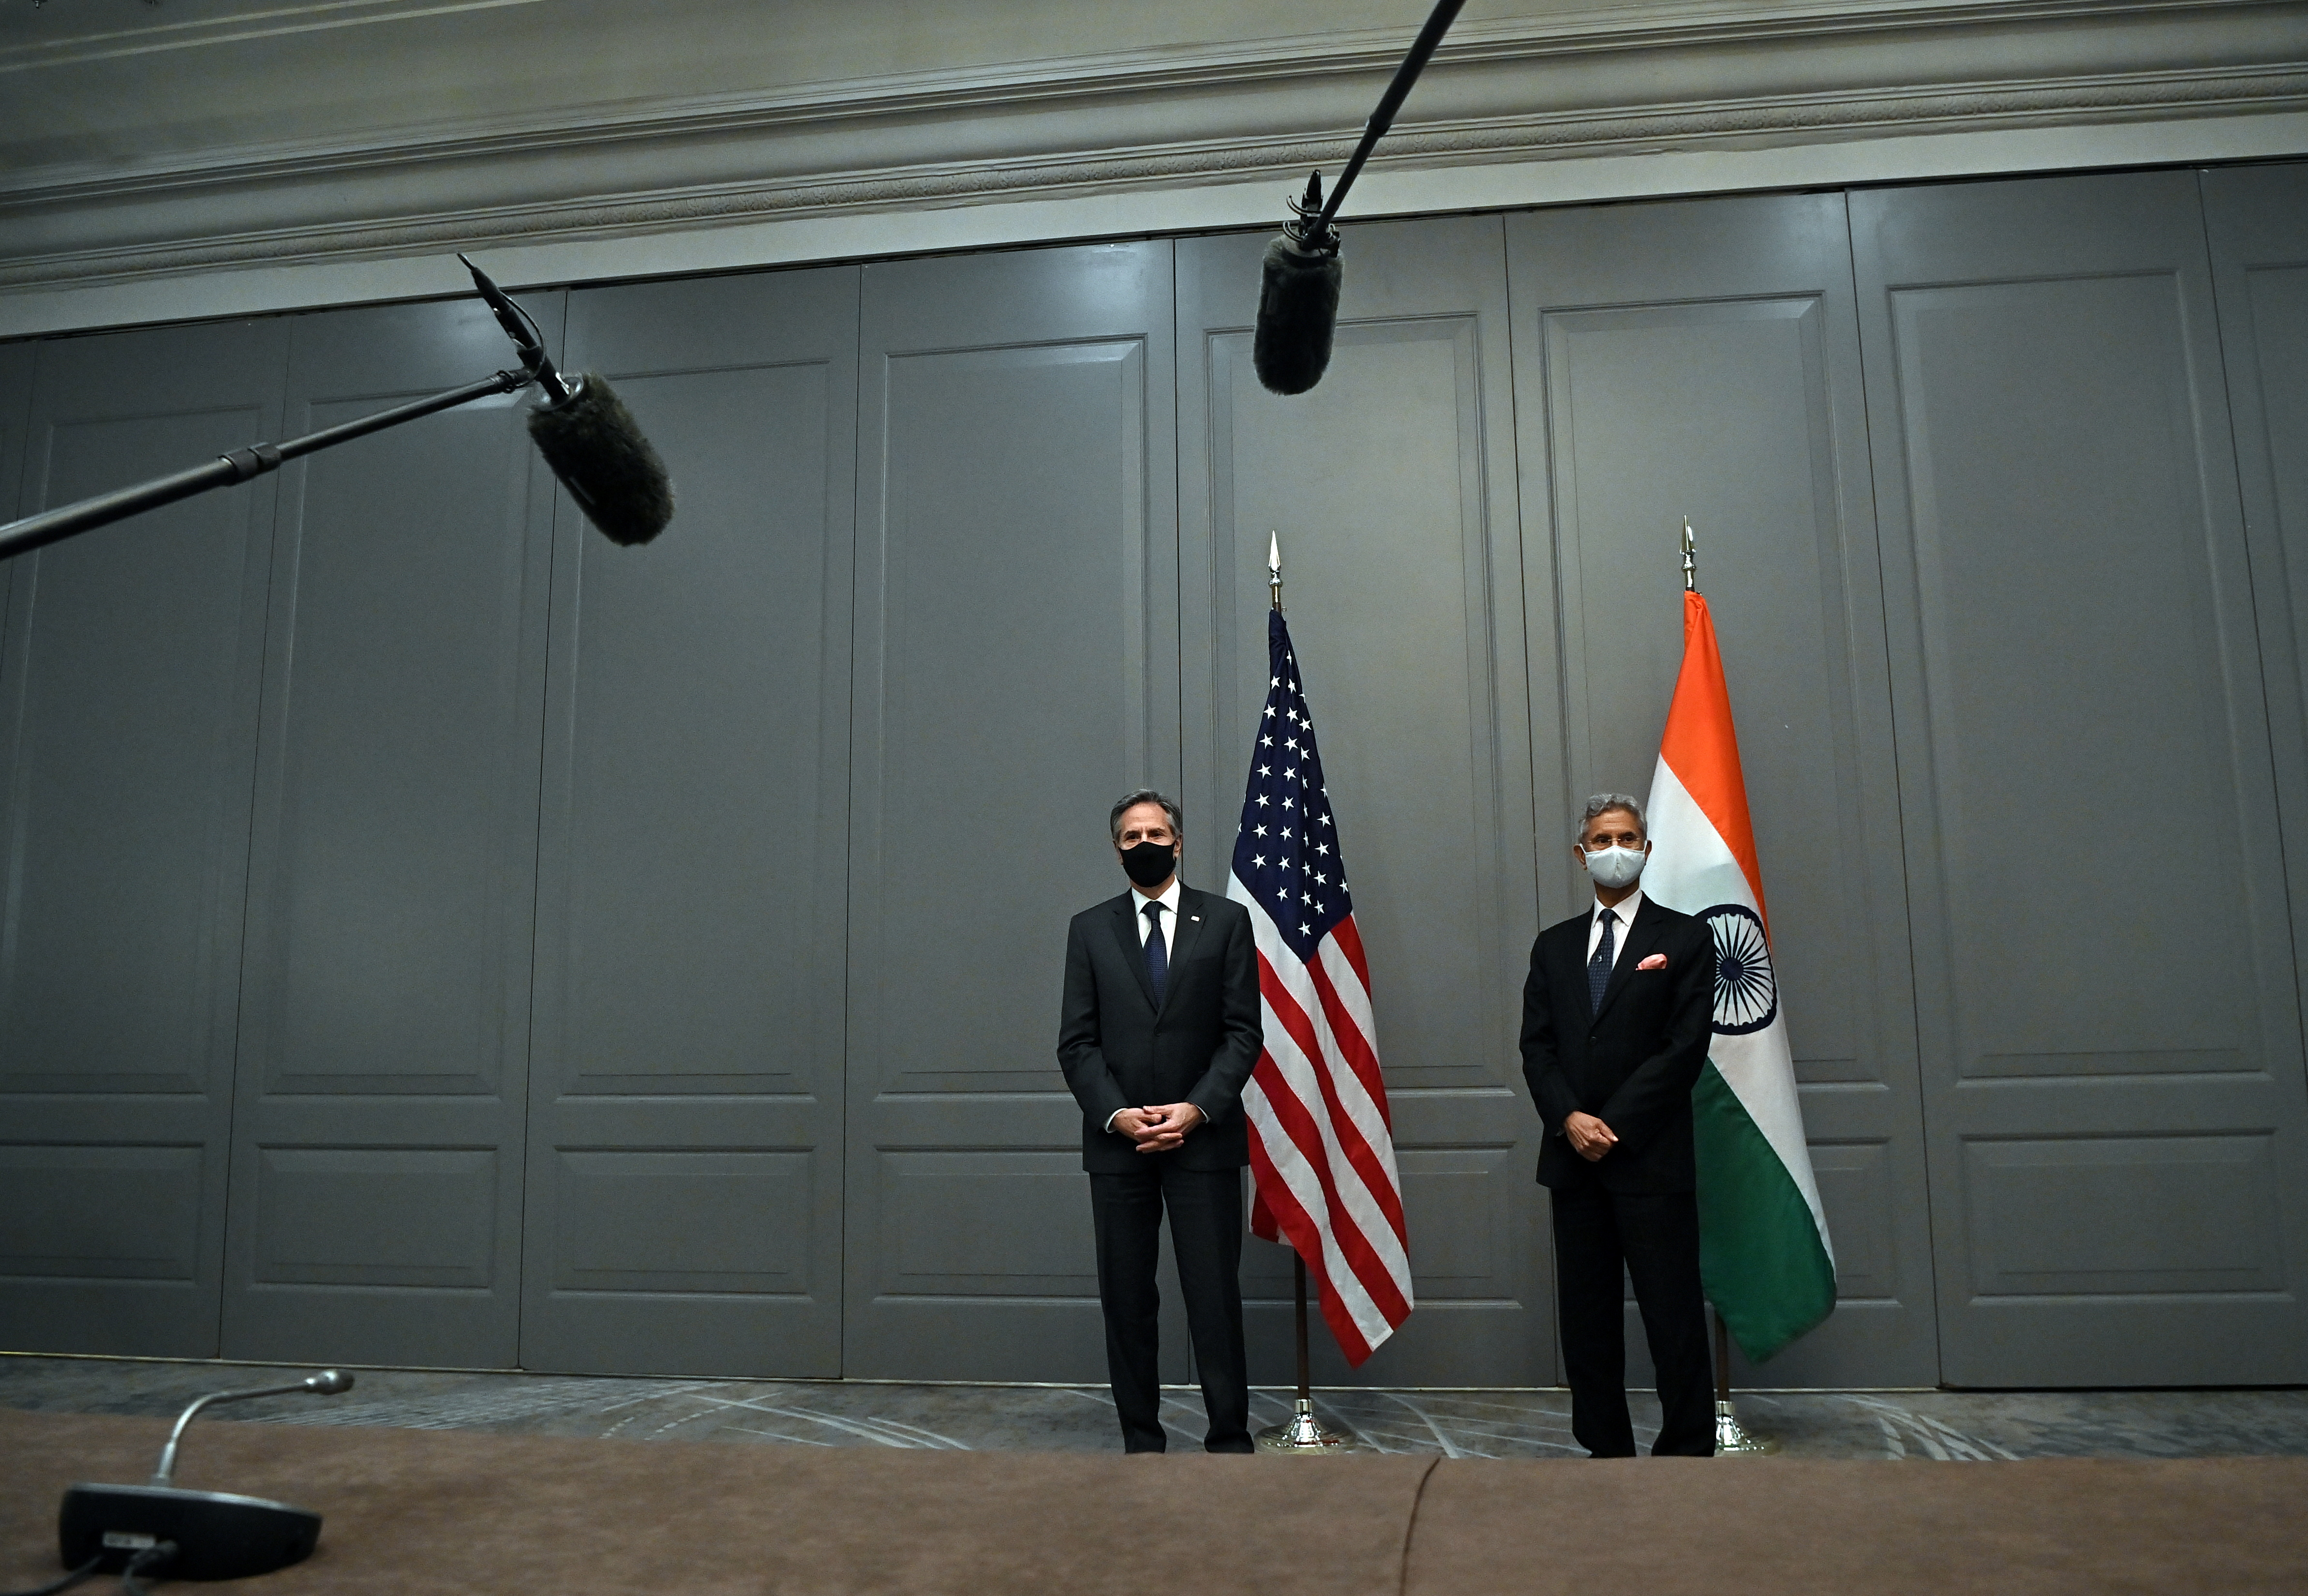 U.S. Secretary of State Antony Blinken attends a news conference with India's Foreign Minister Subrahmanyam Jaishankar following a bilateral meeting in London, Britain May 3, 2021 during the G7 foreign ministers meeting. Ben Stansall/Pool via REUTERS